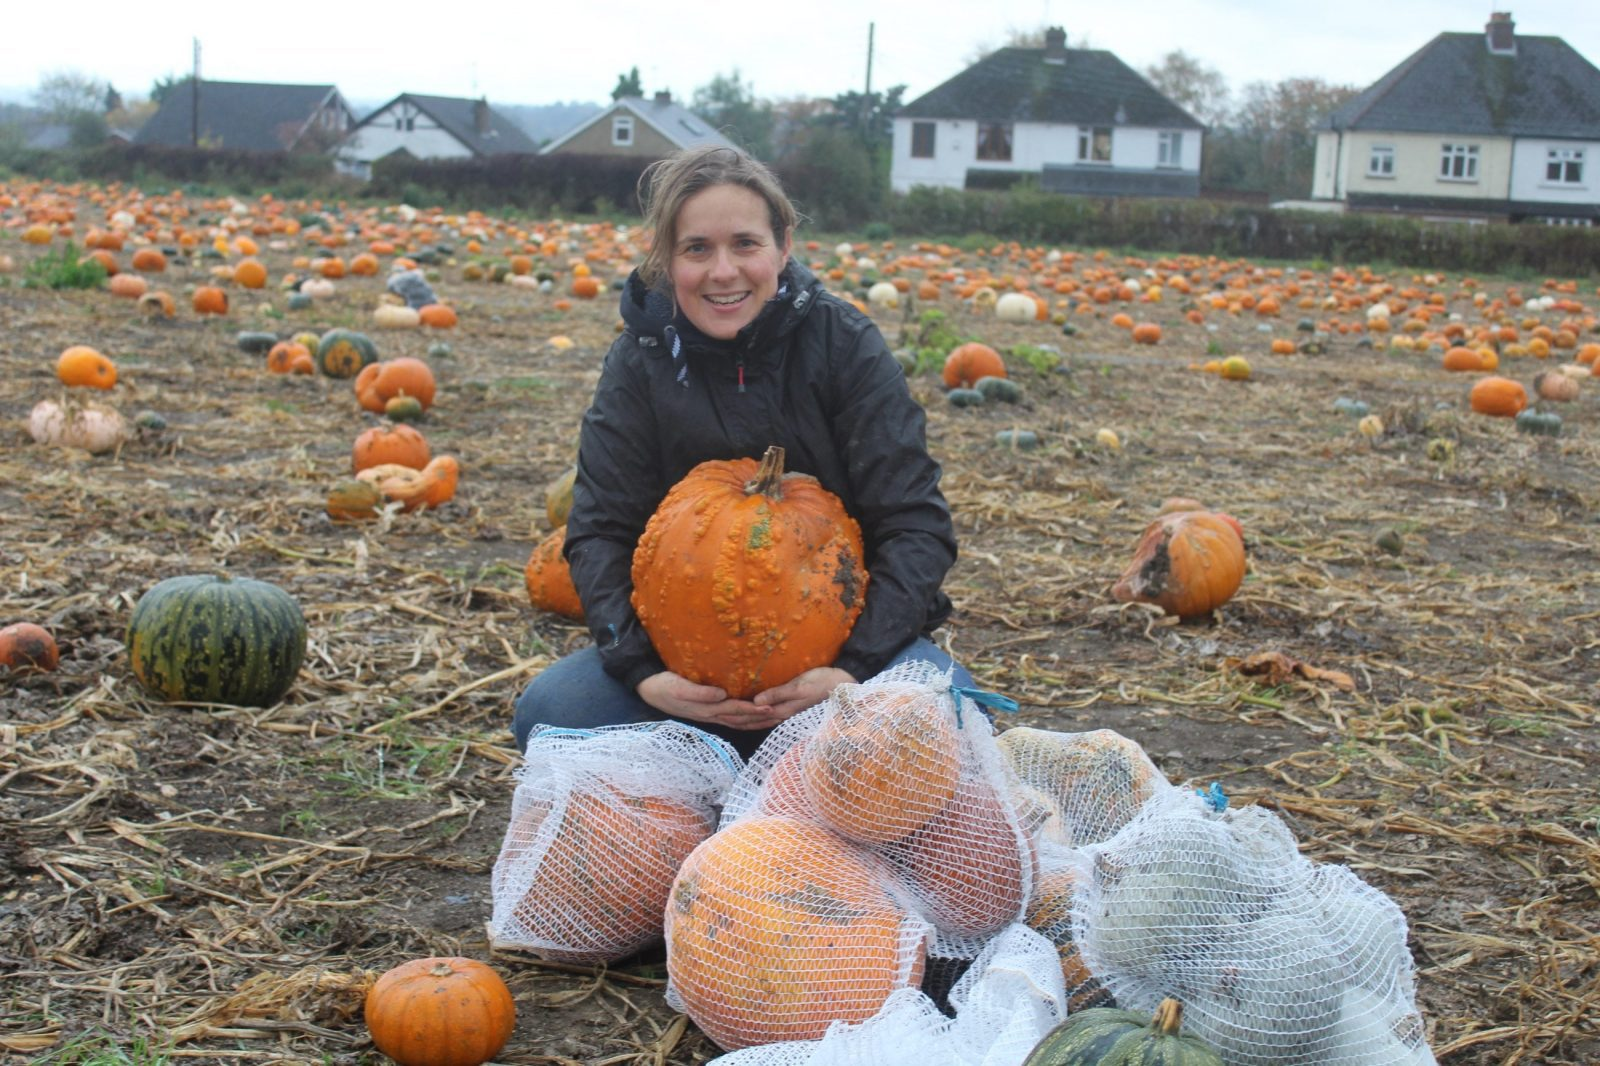 Oh my gourd! Record breaking 25 tonnes of pumpkins rescued on Kent farm